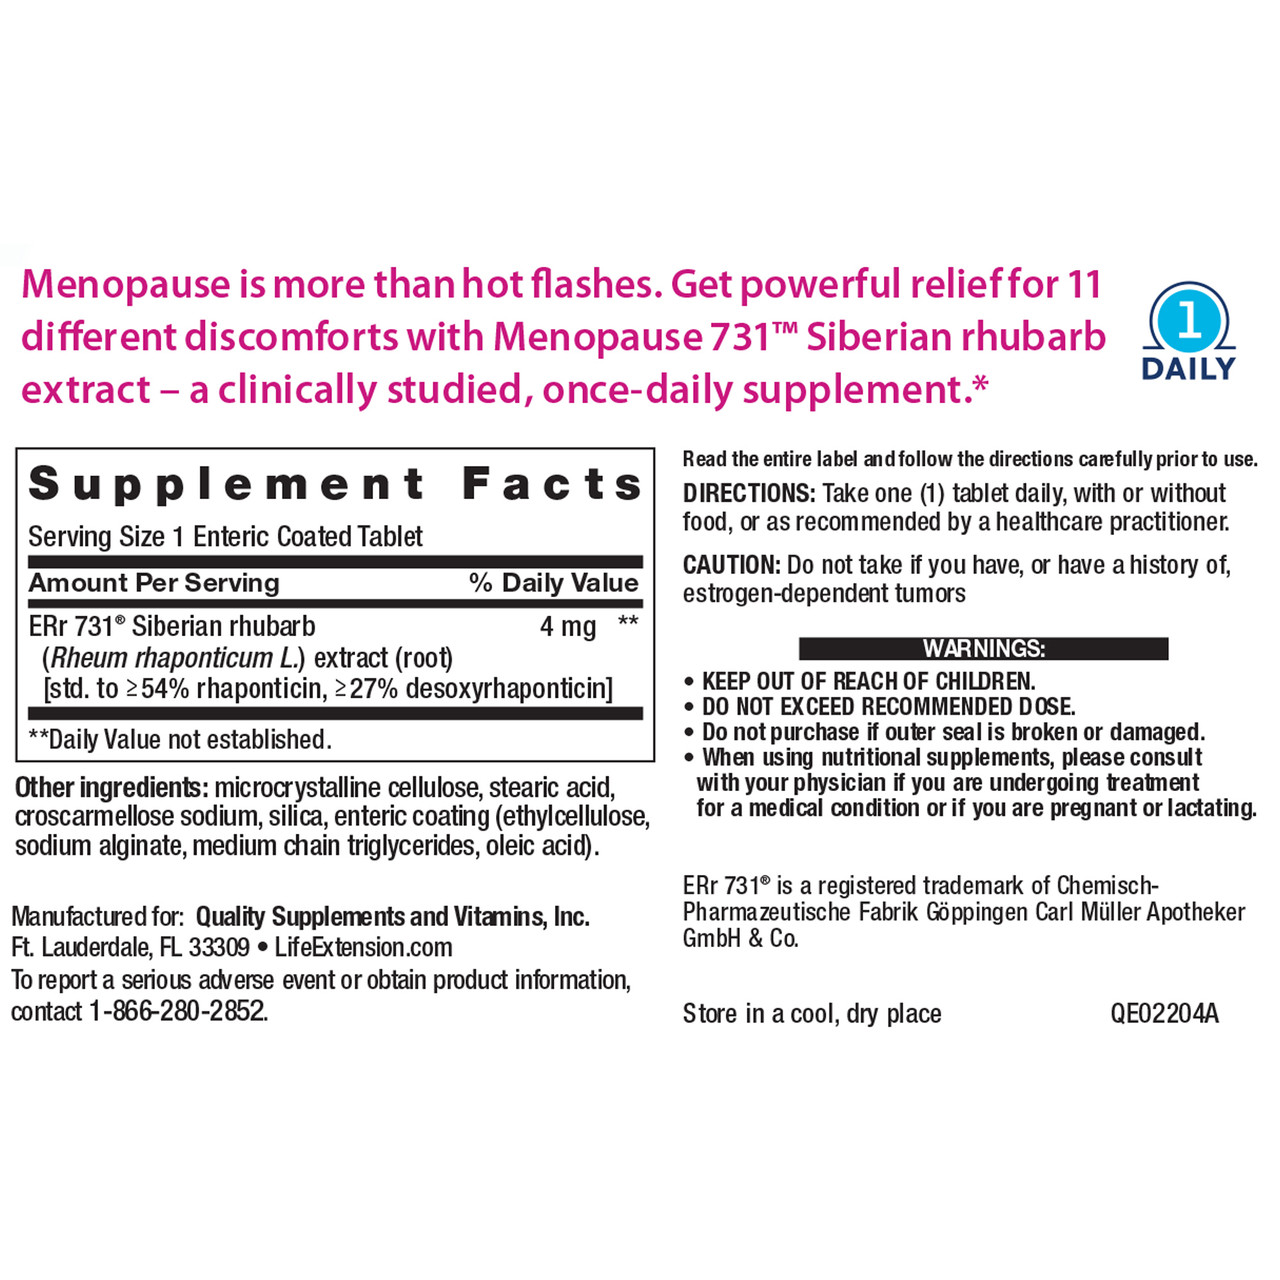 Life Extension Menopause731 30 tablets ingredients